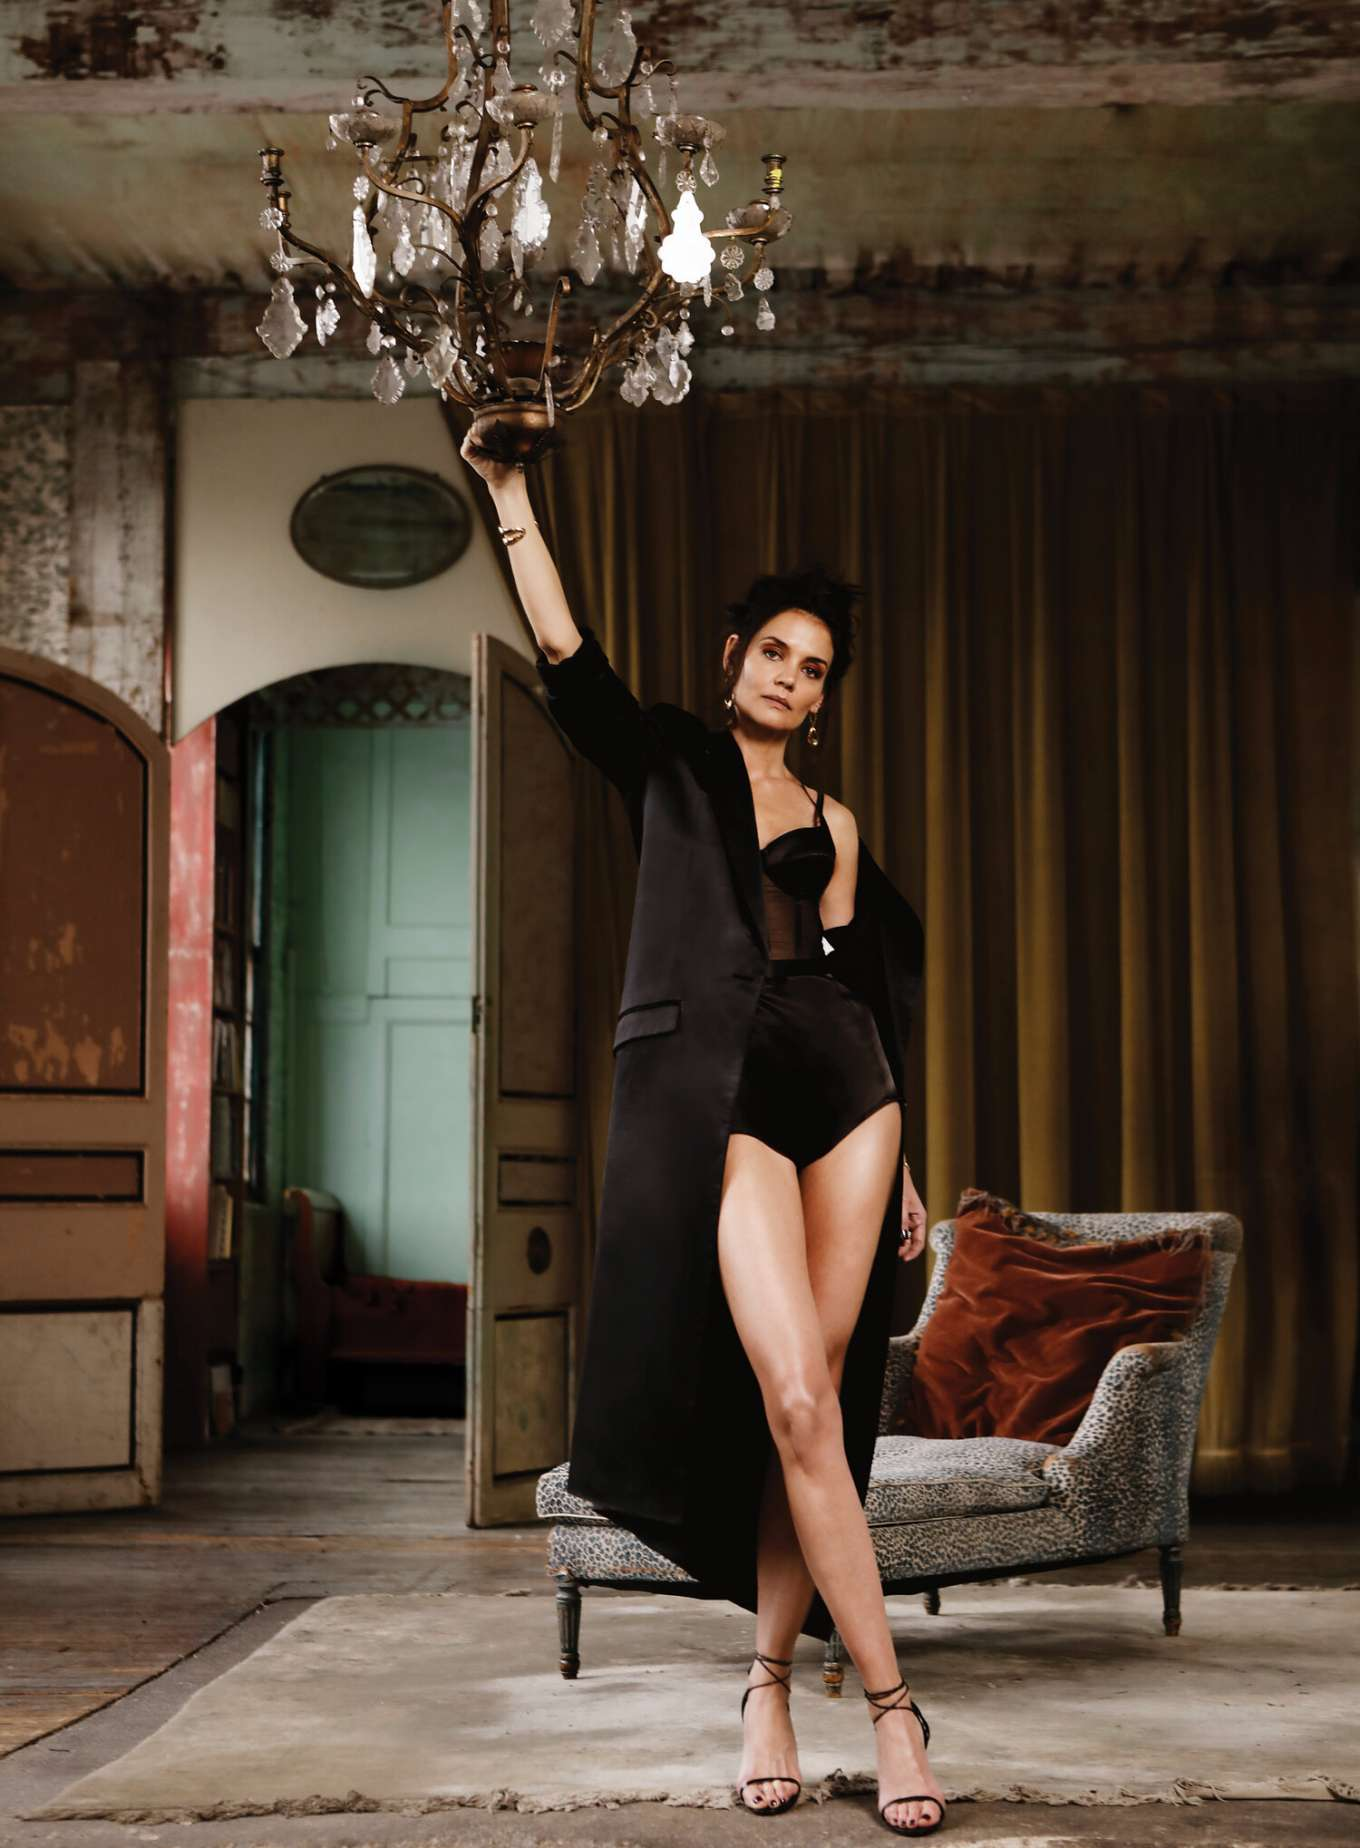 Katie Holmes - William Lords for Flaunt Magazine 2020